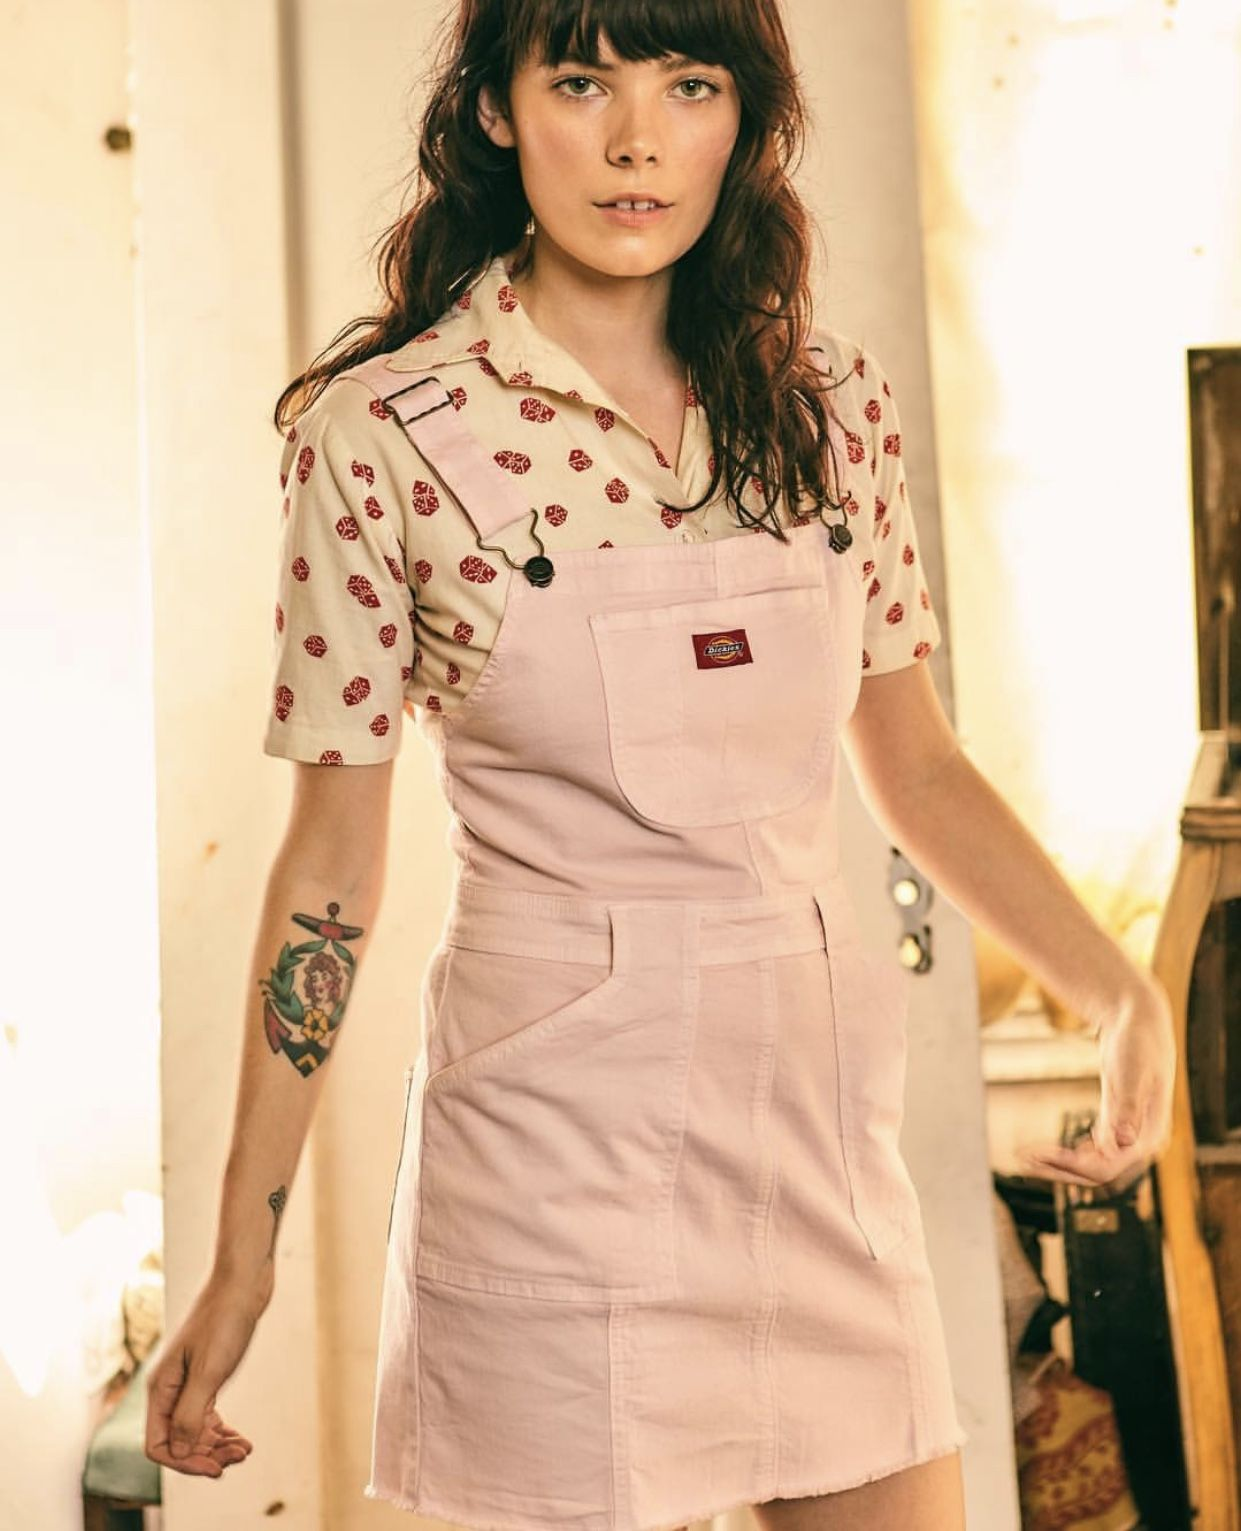 a7bb9a78bd Dickies Overall Dress available at Urban Outfitters  Dickies   Urbanoutfitters  pink  overalls